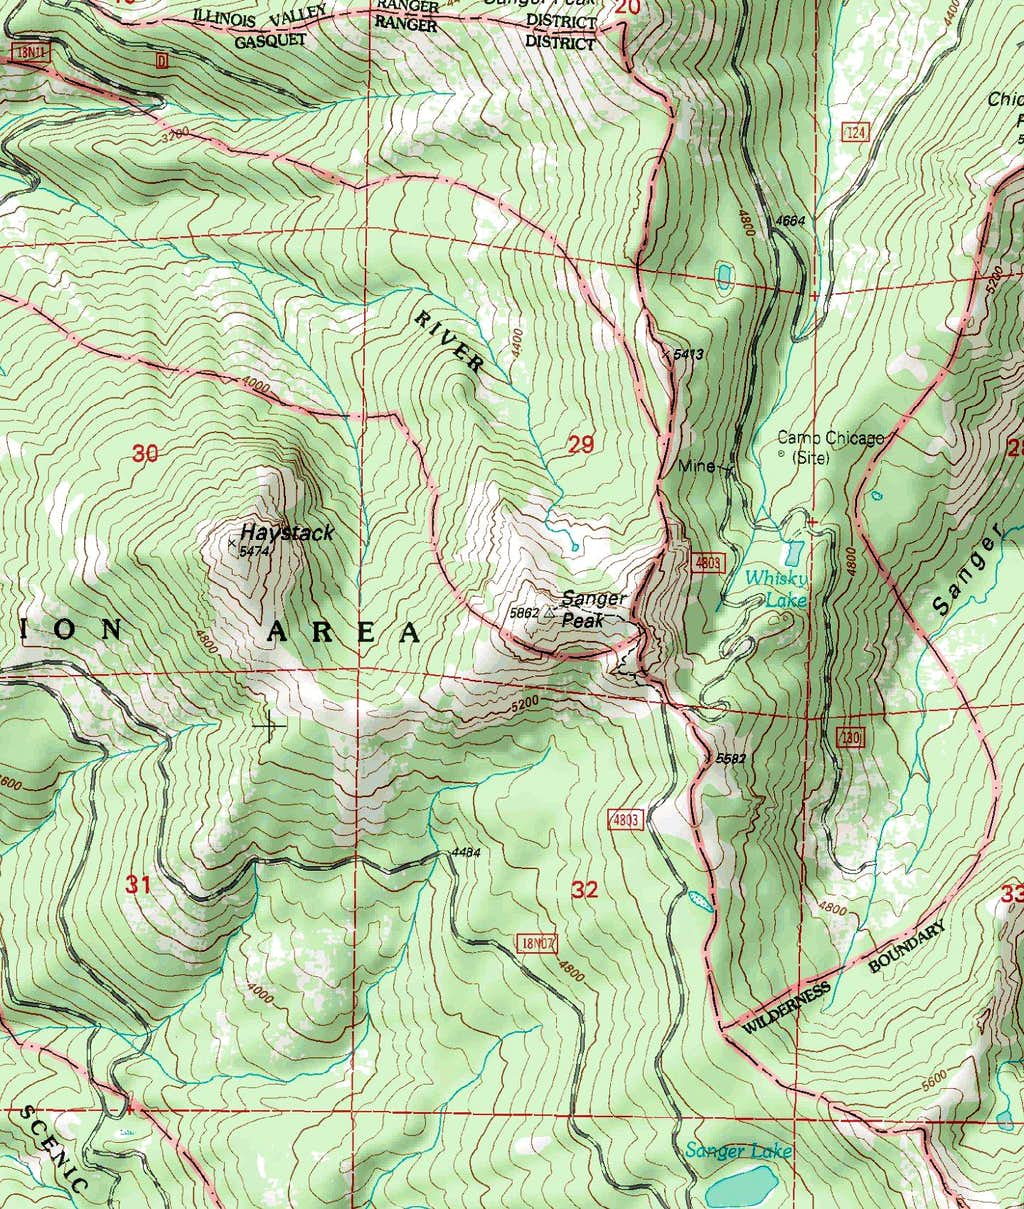 Sanger Peak Map